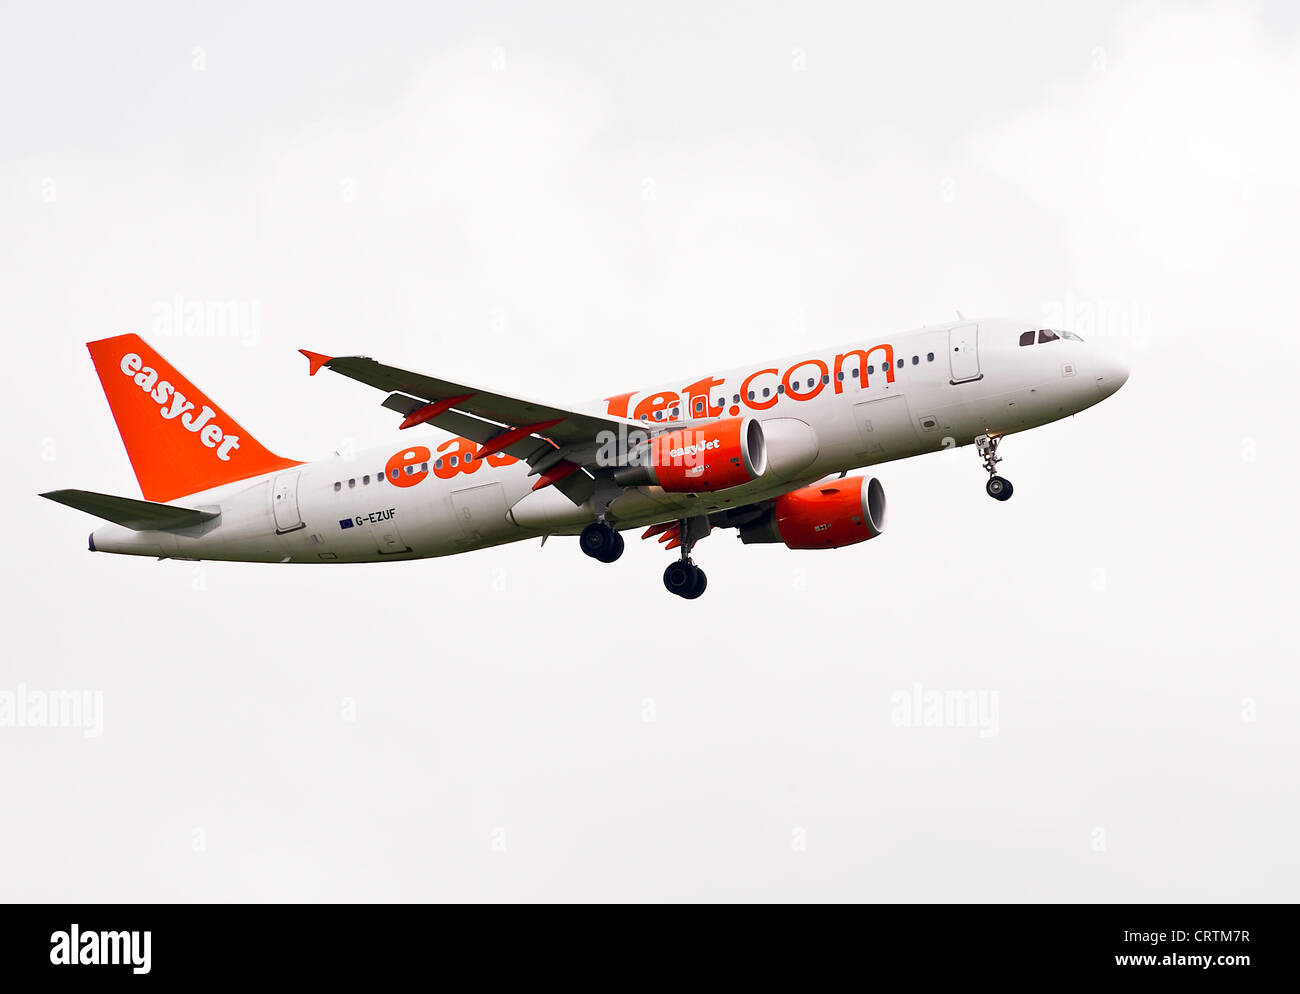 EasyJet Airbus A320-214 Airliner G-EZUF on Approach to London Gatwick Airport West Sussex England United Kingdom Stock Photo